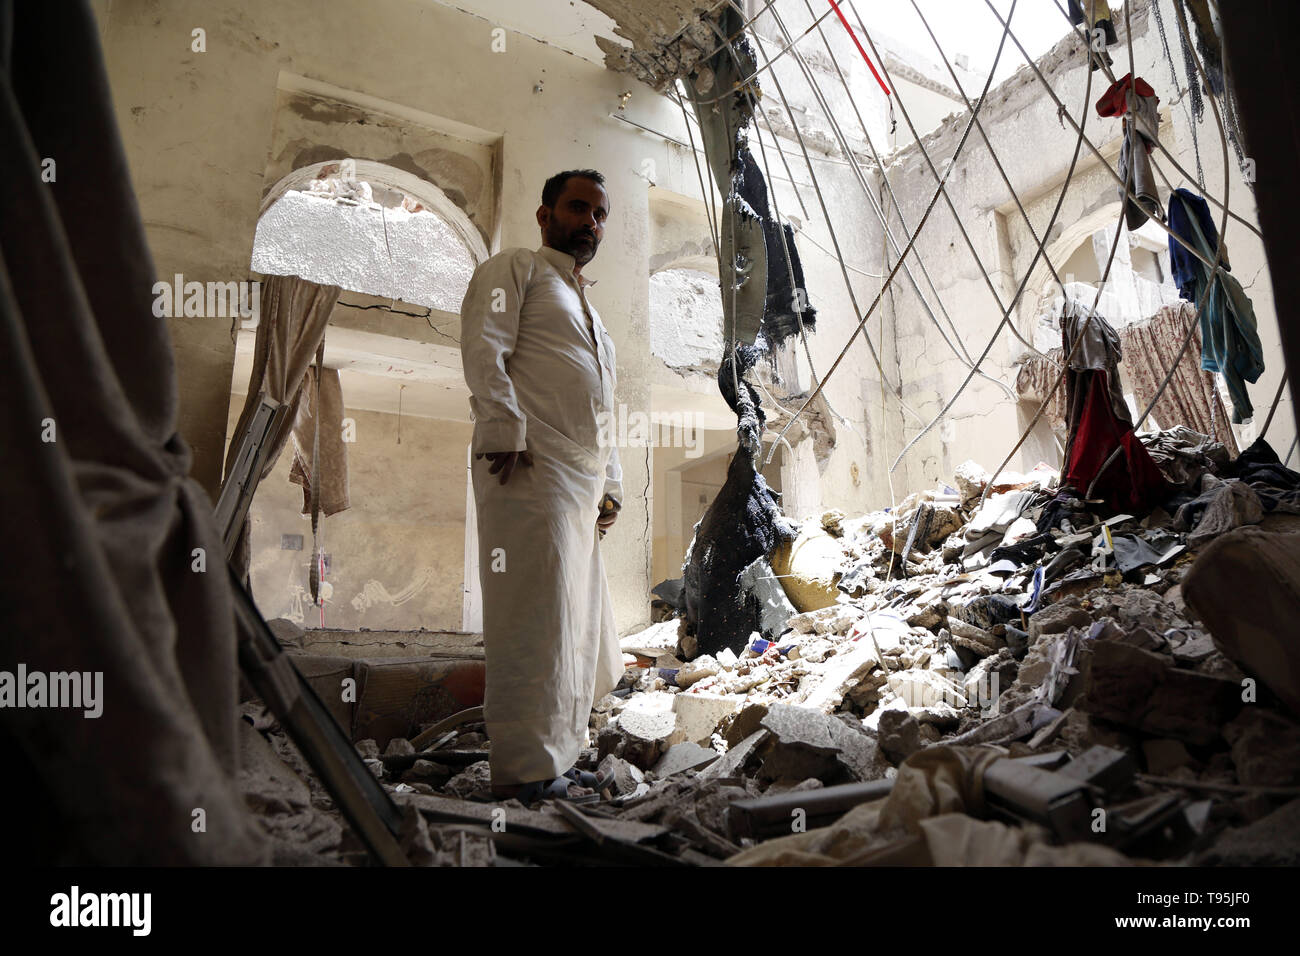 Sanaa, Yemen. 16th May 2019. A man inspects a damaged house after an airstrike hit by the Saudi Arabia-led coalition in Sanaa, Yemen, May 16, 2019. The Saudi Arabia-led coalition launched airstrikes on Houthi rebels' targets in the Yemeni capital Sanaa on Thursday morning, causing civilian casualties and damages, authorities and local residents said. Credit: Xinhua/Alamy Live News - Stock Image